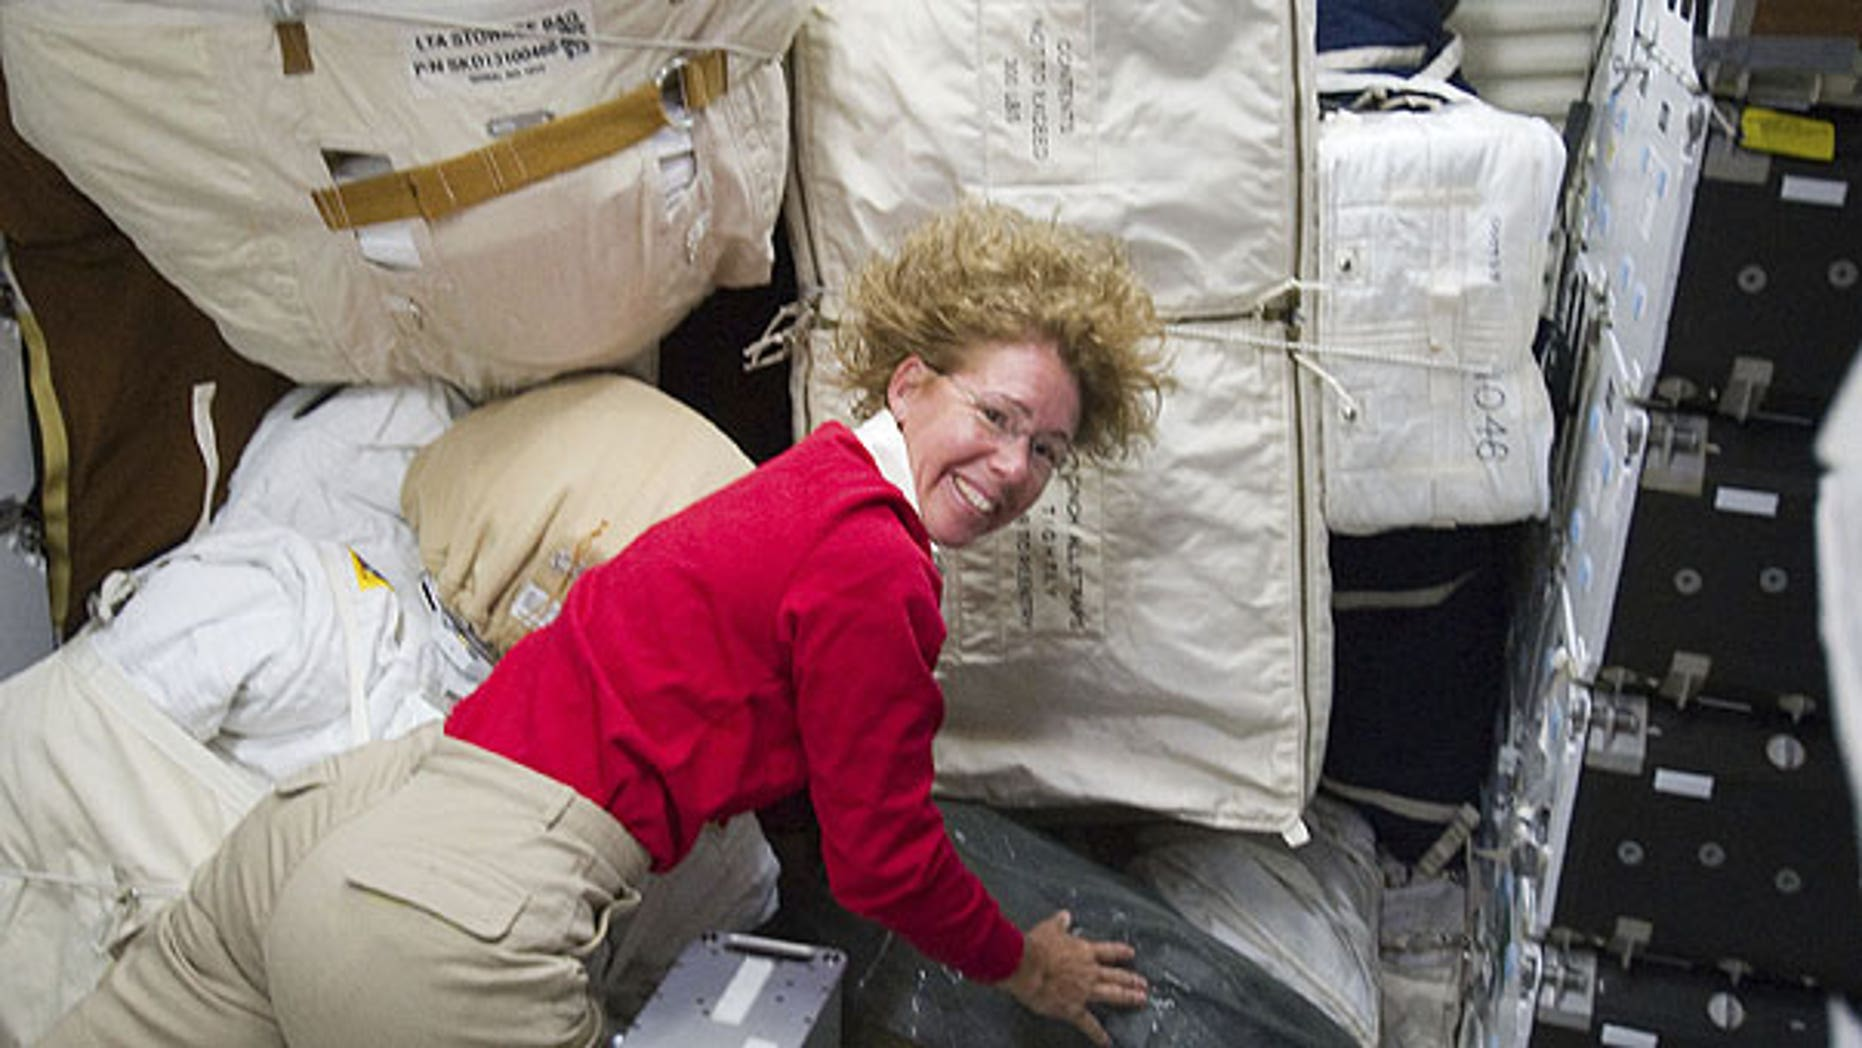 July 10: Photo provided by NASA, NASA astronaut Sandy Magnus, STS-135 mission specialist, is pictured with only a small portion of supplies and equipment on the middeck of the space shuttle Atlantis.